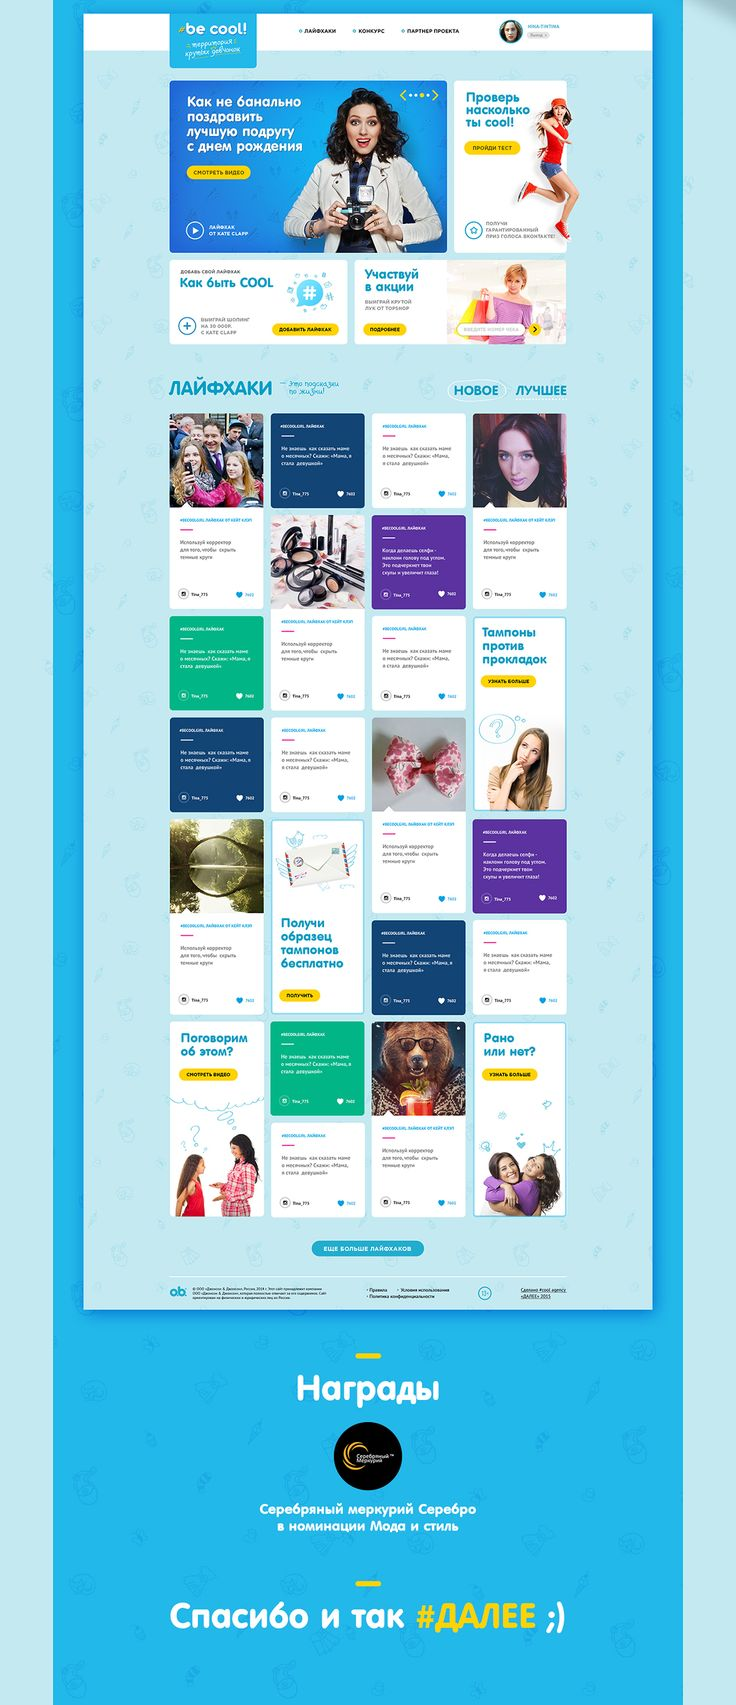 Be cool girl project on Behance